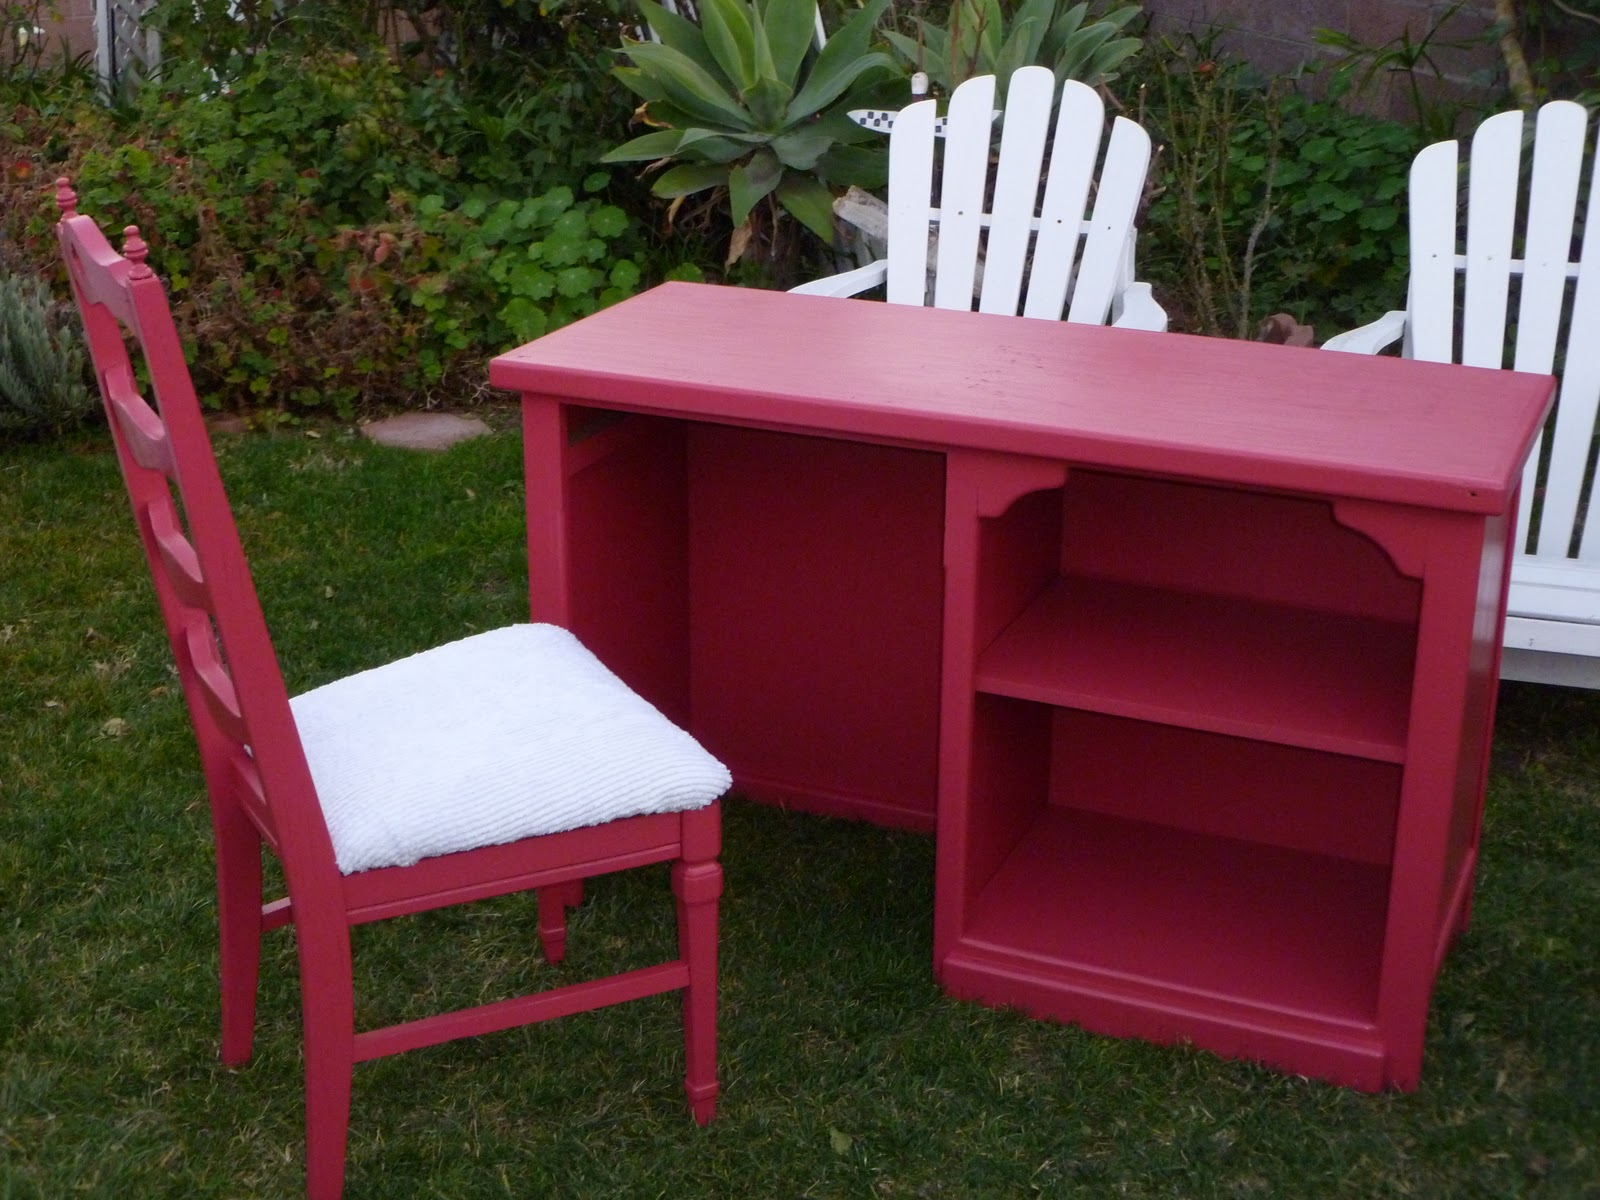 Shabby To Chic Treasures: ~~Pink Desk and Chair Awesome